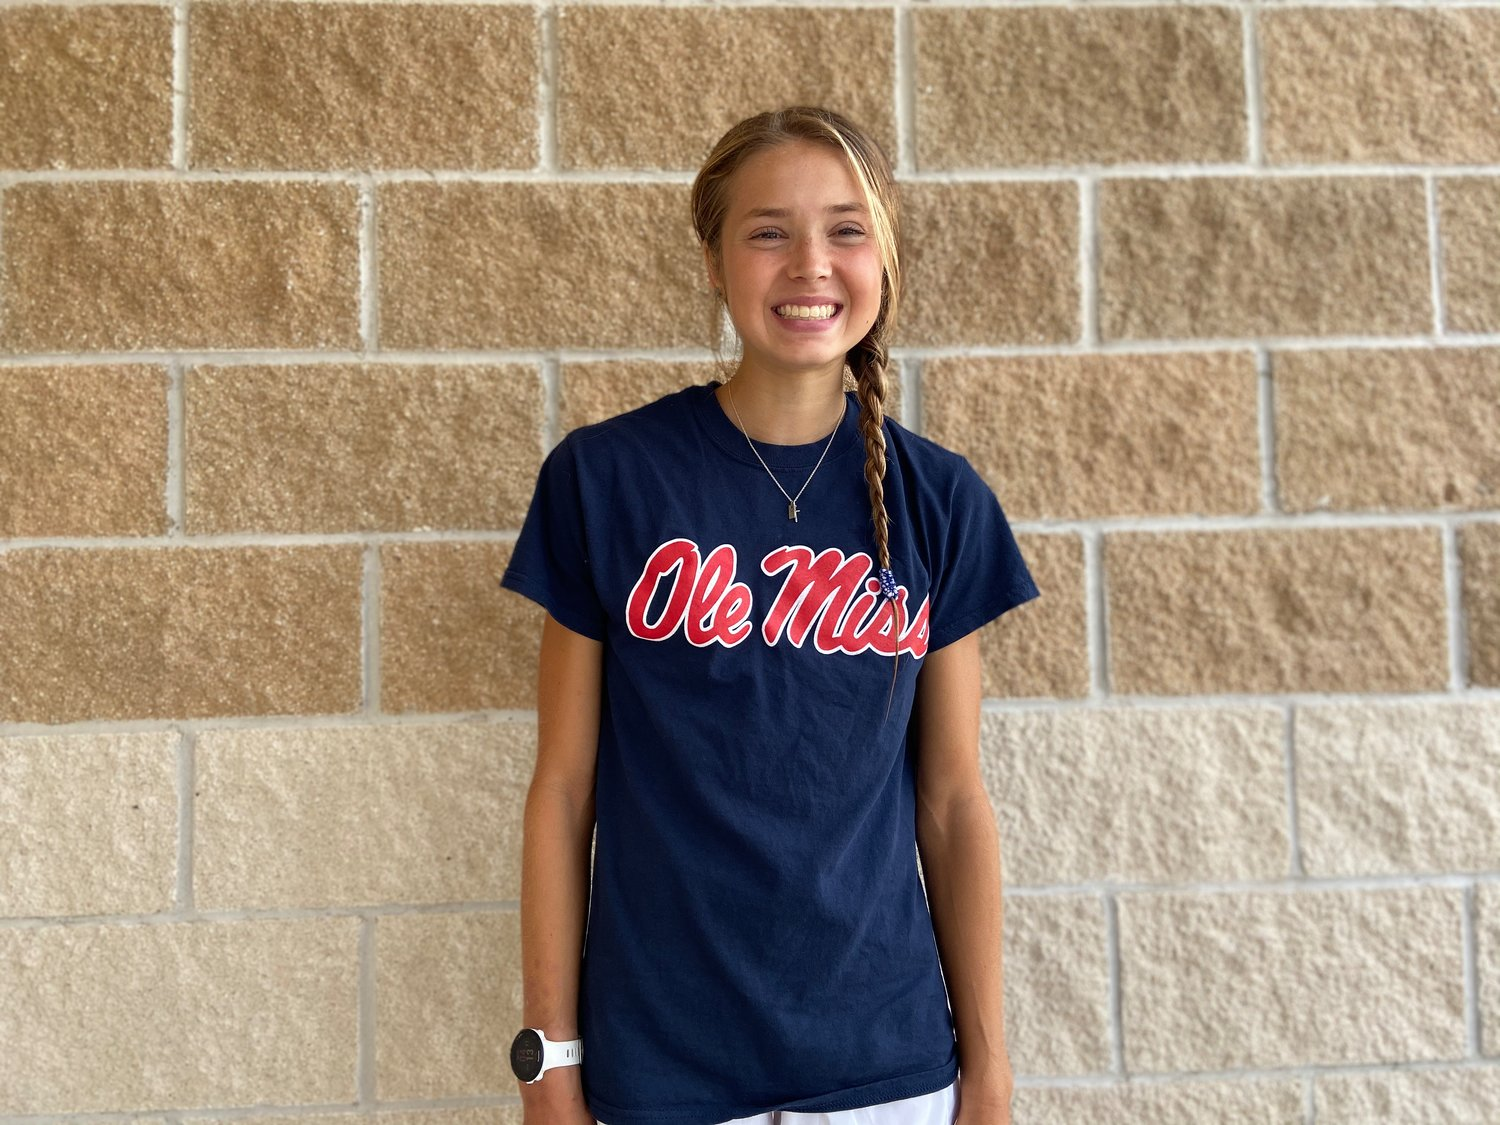 Tompkins senior Addison Stevenson has verbally committed to run cross country and track and field at Ole Miss.